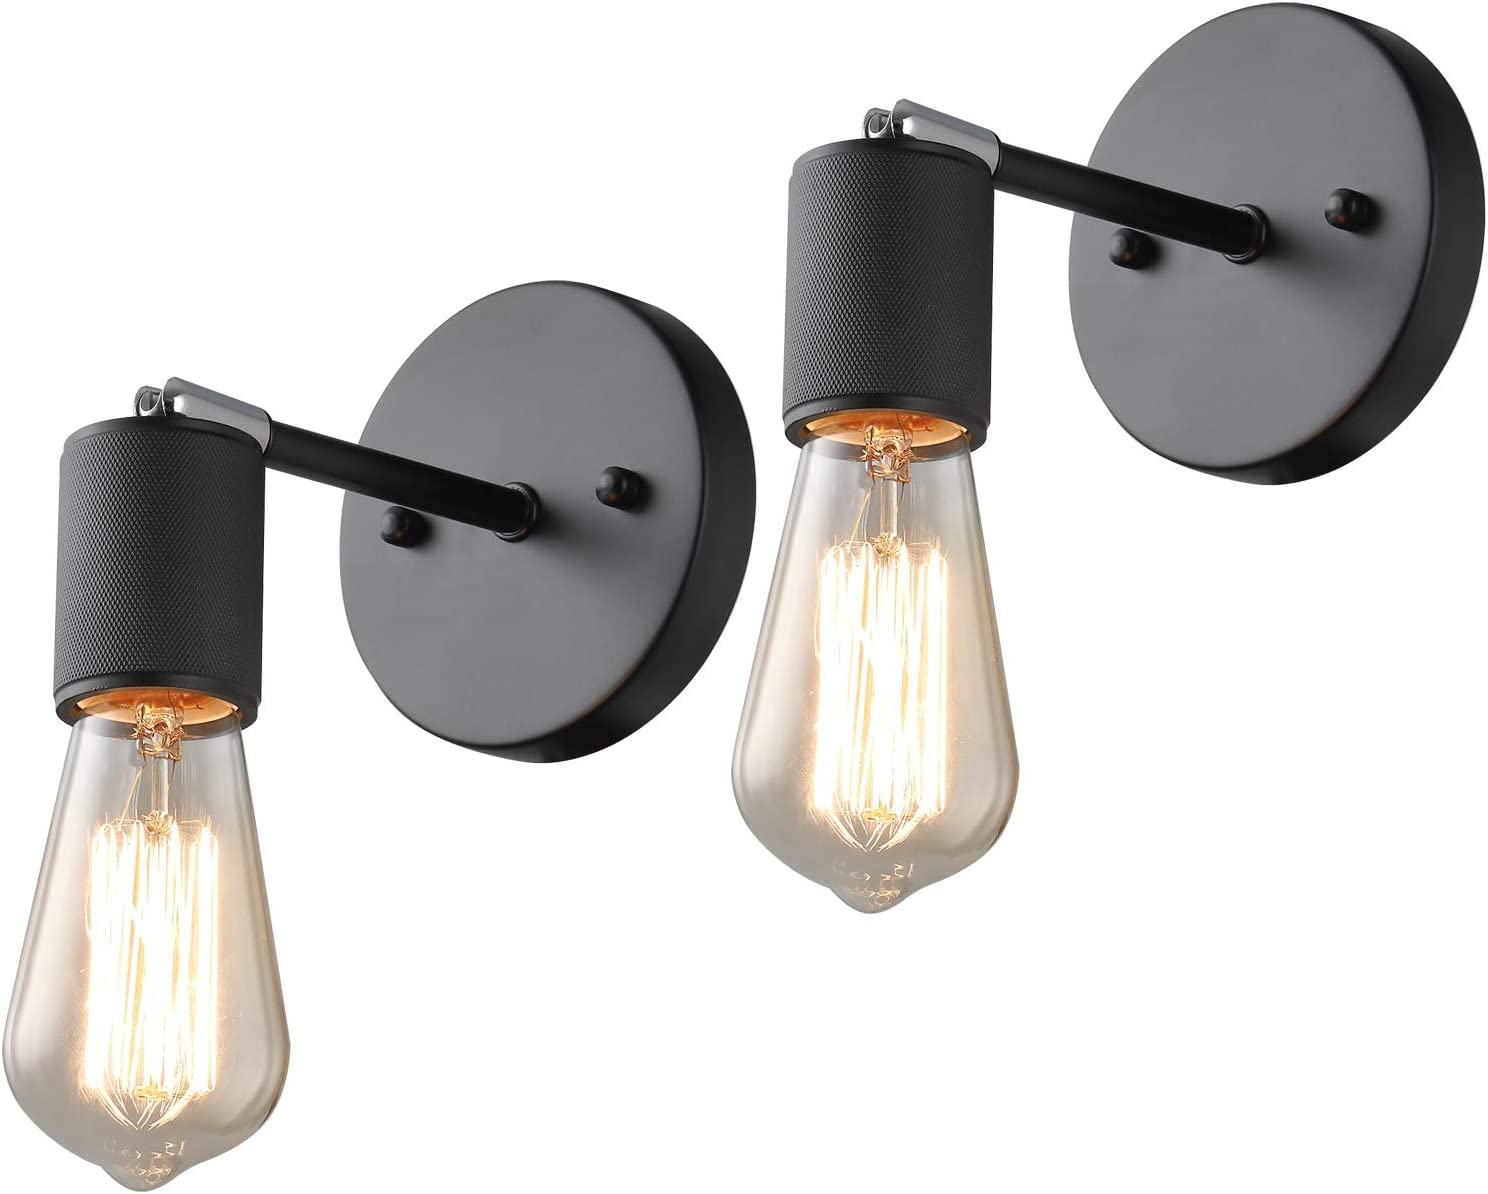 Black Wall Tucson Mall Sconces Set of Two Lighting Vintage Purchase Wal